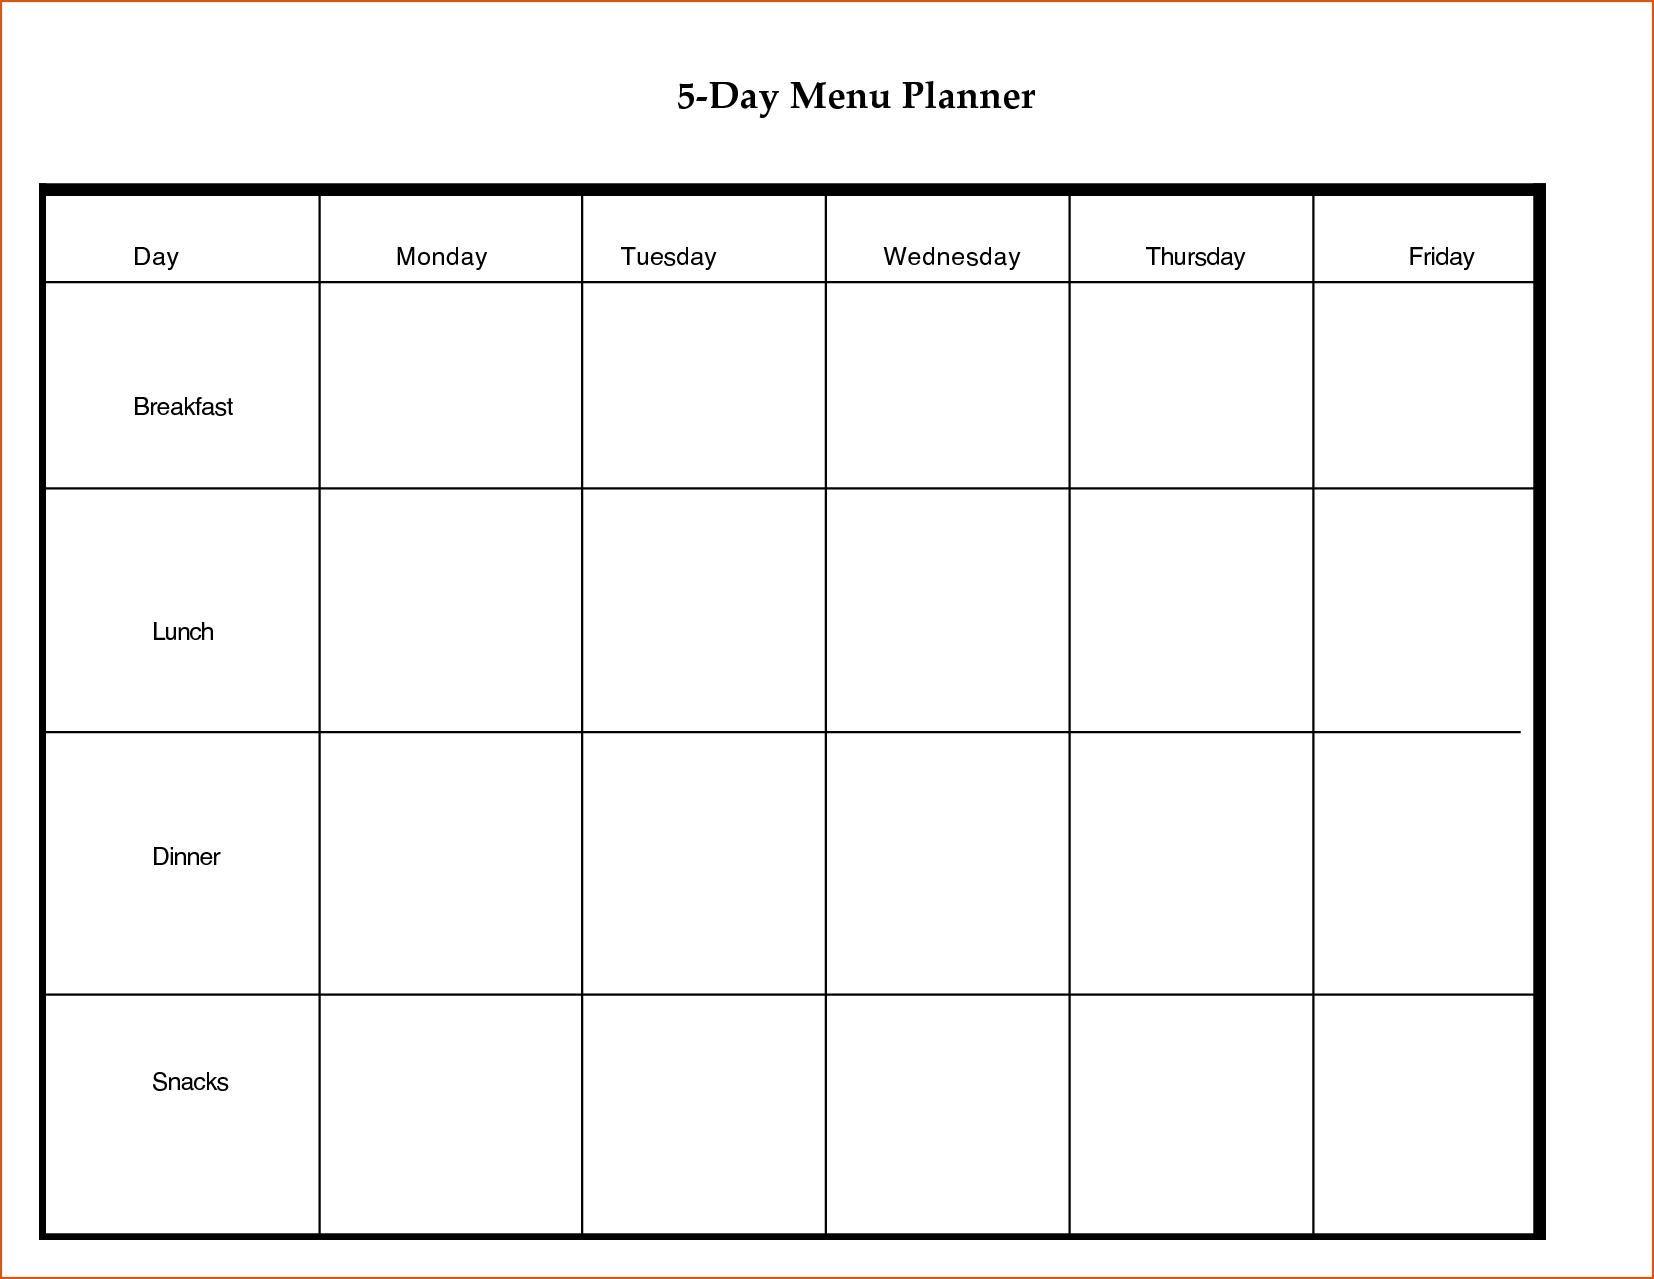 Blank Calendar With Imes Day Week Holidays Emplate Schedule Ime within 5 Day Week Blank Calendar With Time Slots Printable